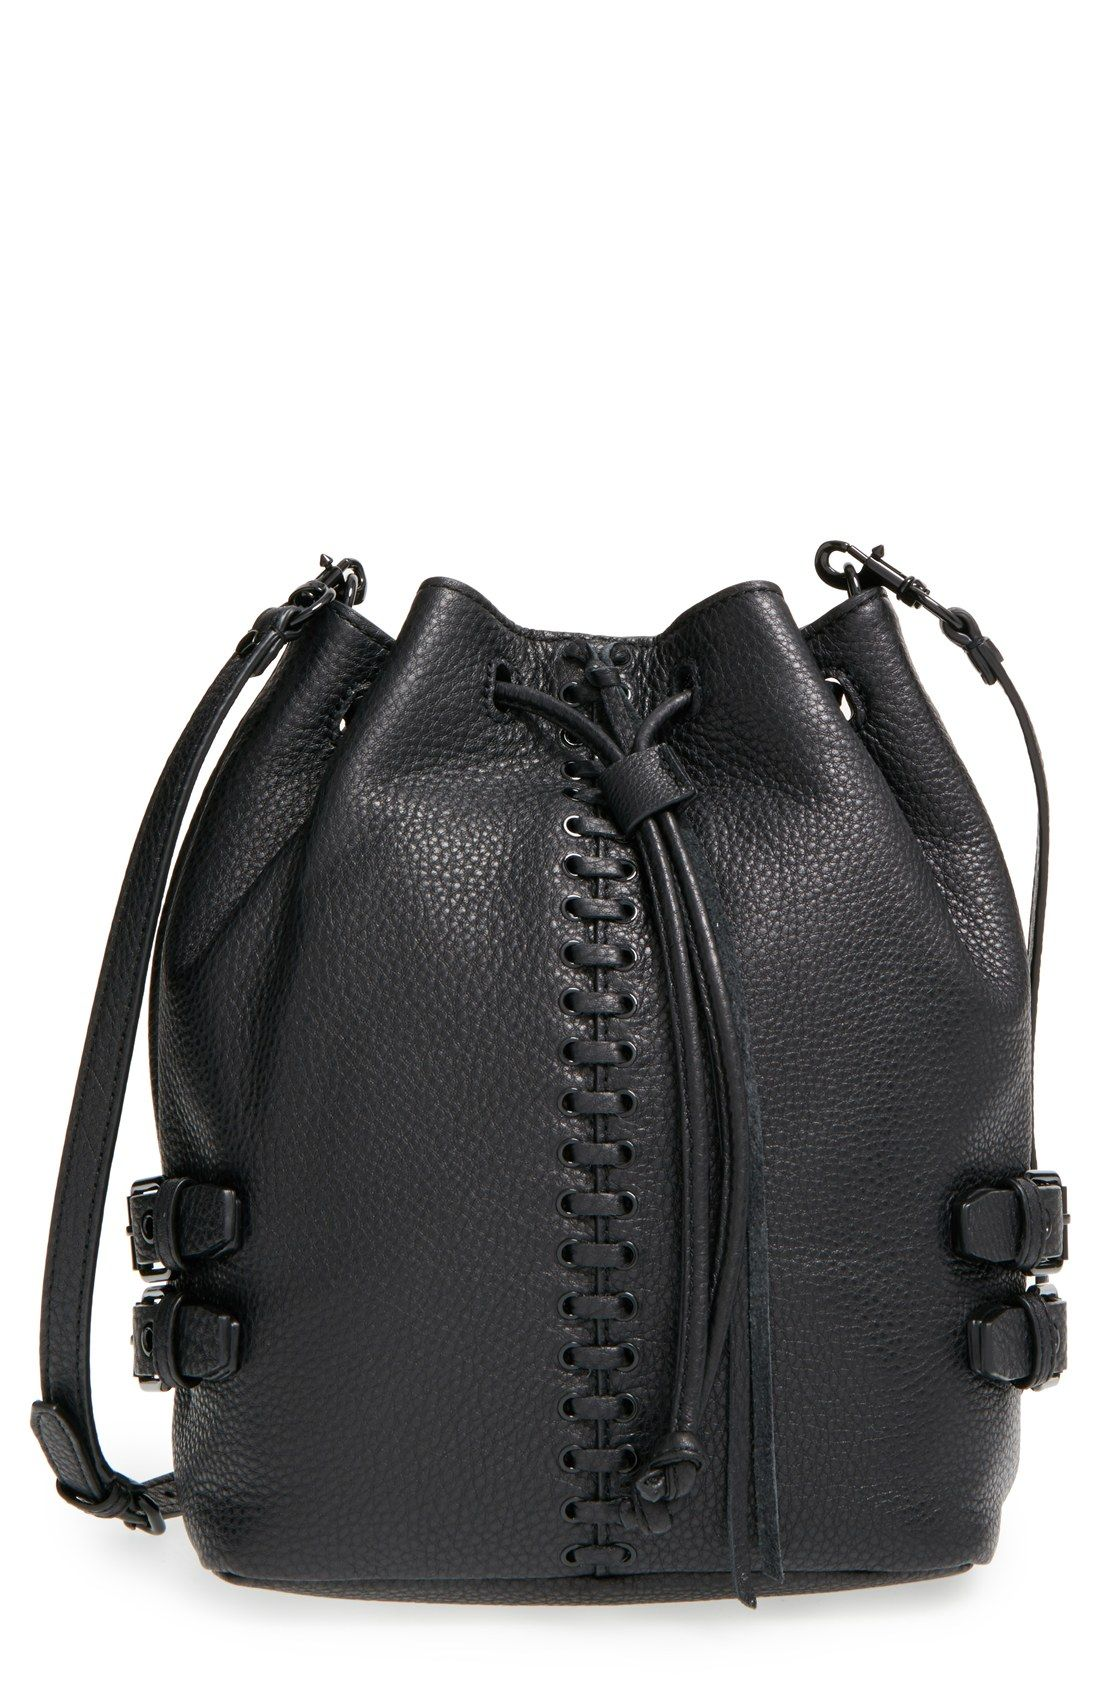 c0a4c36809 Loving this edgy-yet-elegant bucket bag from Rebecca Minkoff. A slouchy  silhouette furthers the attitude